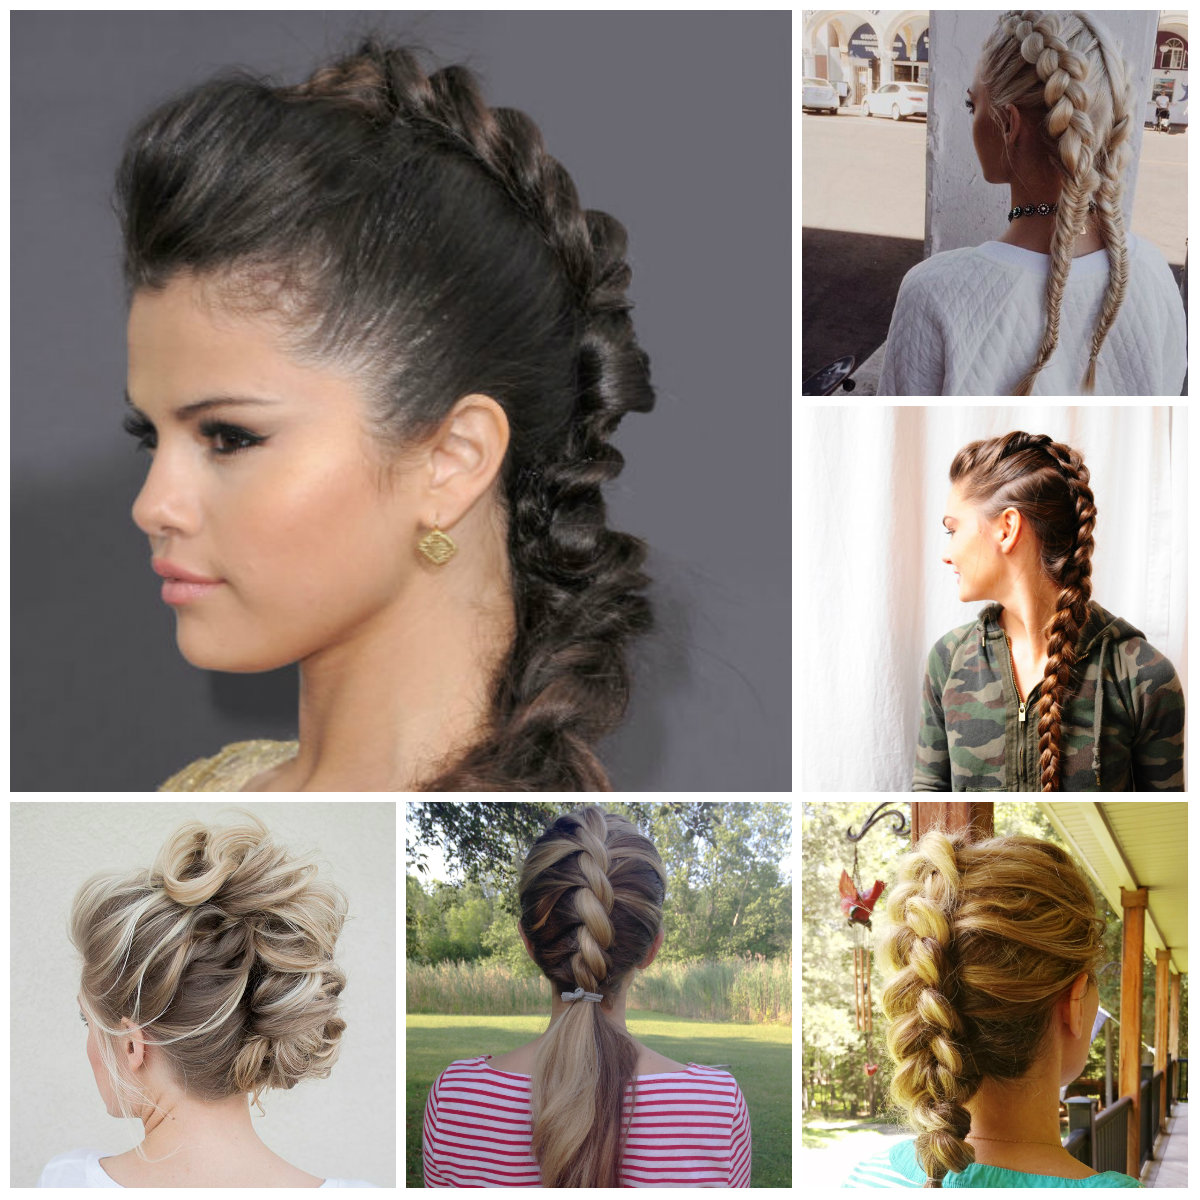 Creative Mohawk Braid Hairstyle Ideas For 2016 2019 Haircuts